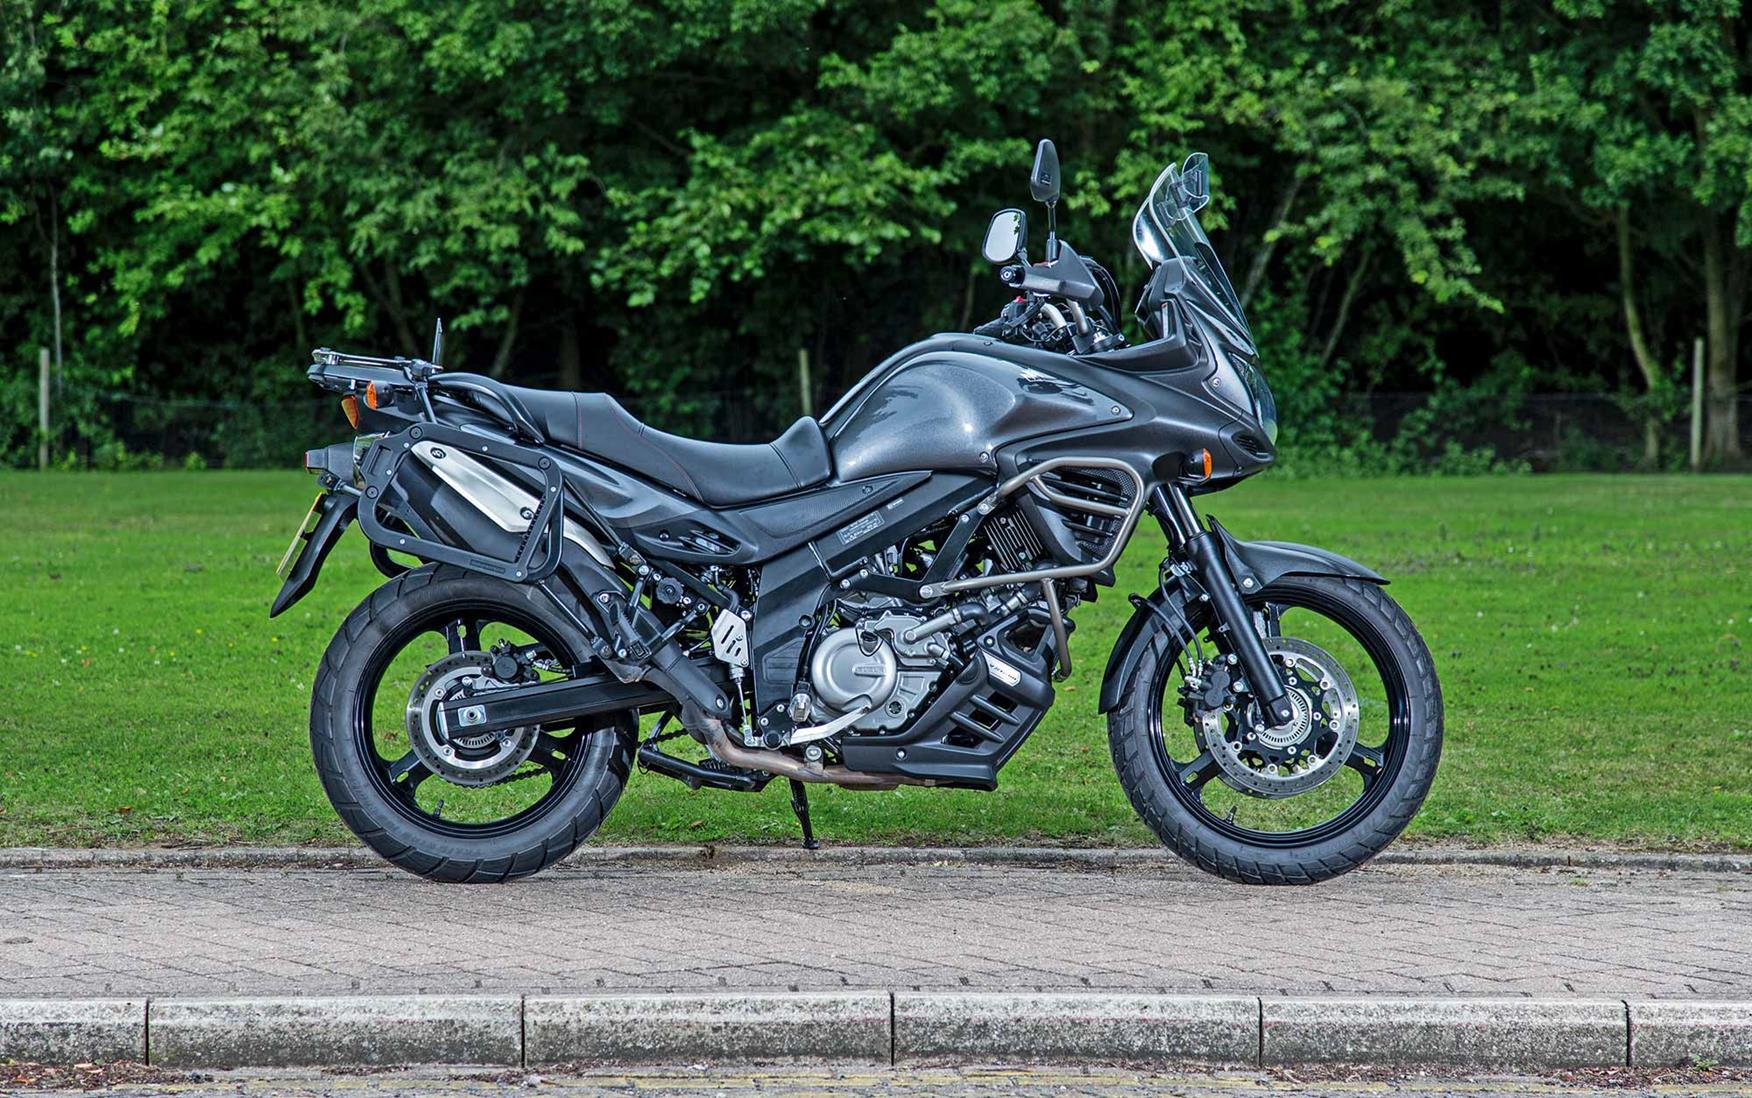 The Suzuki V-Strom 650